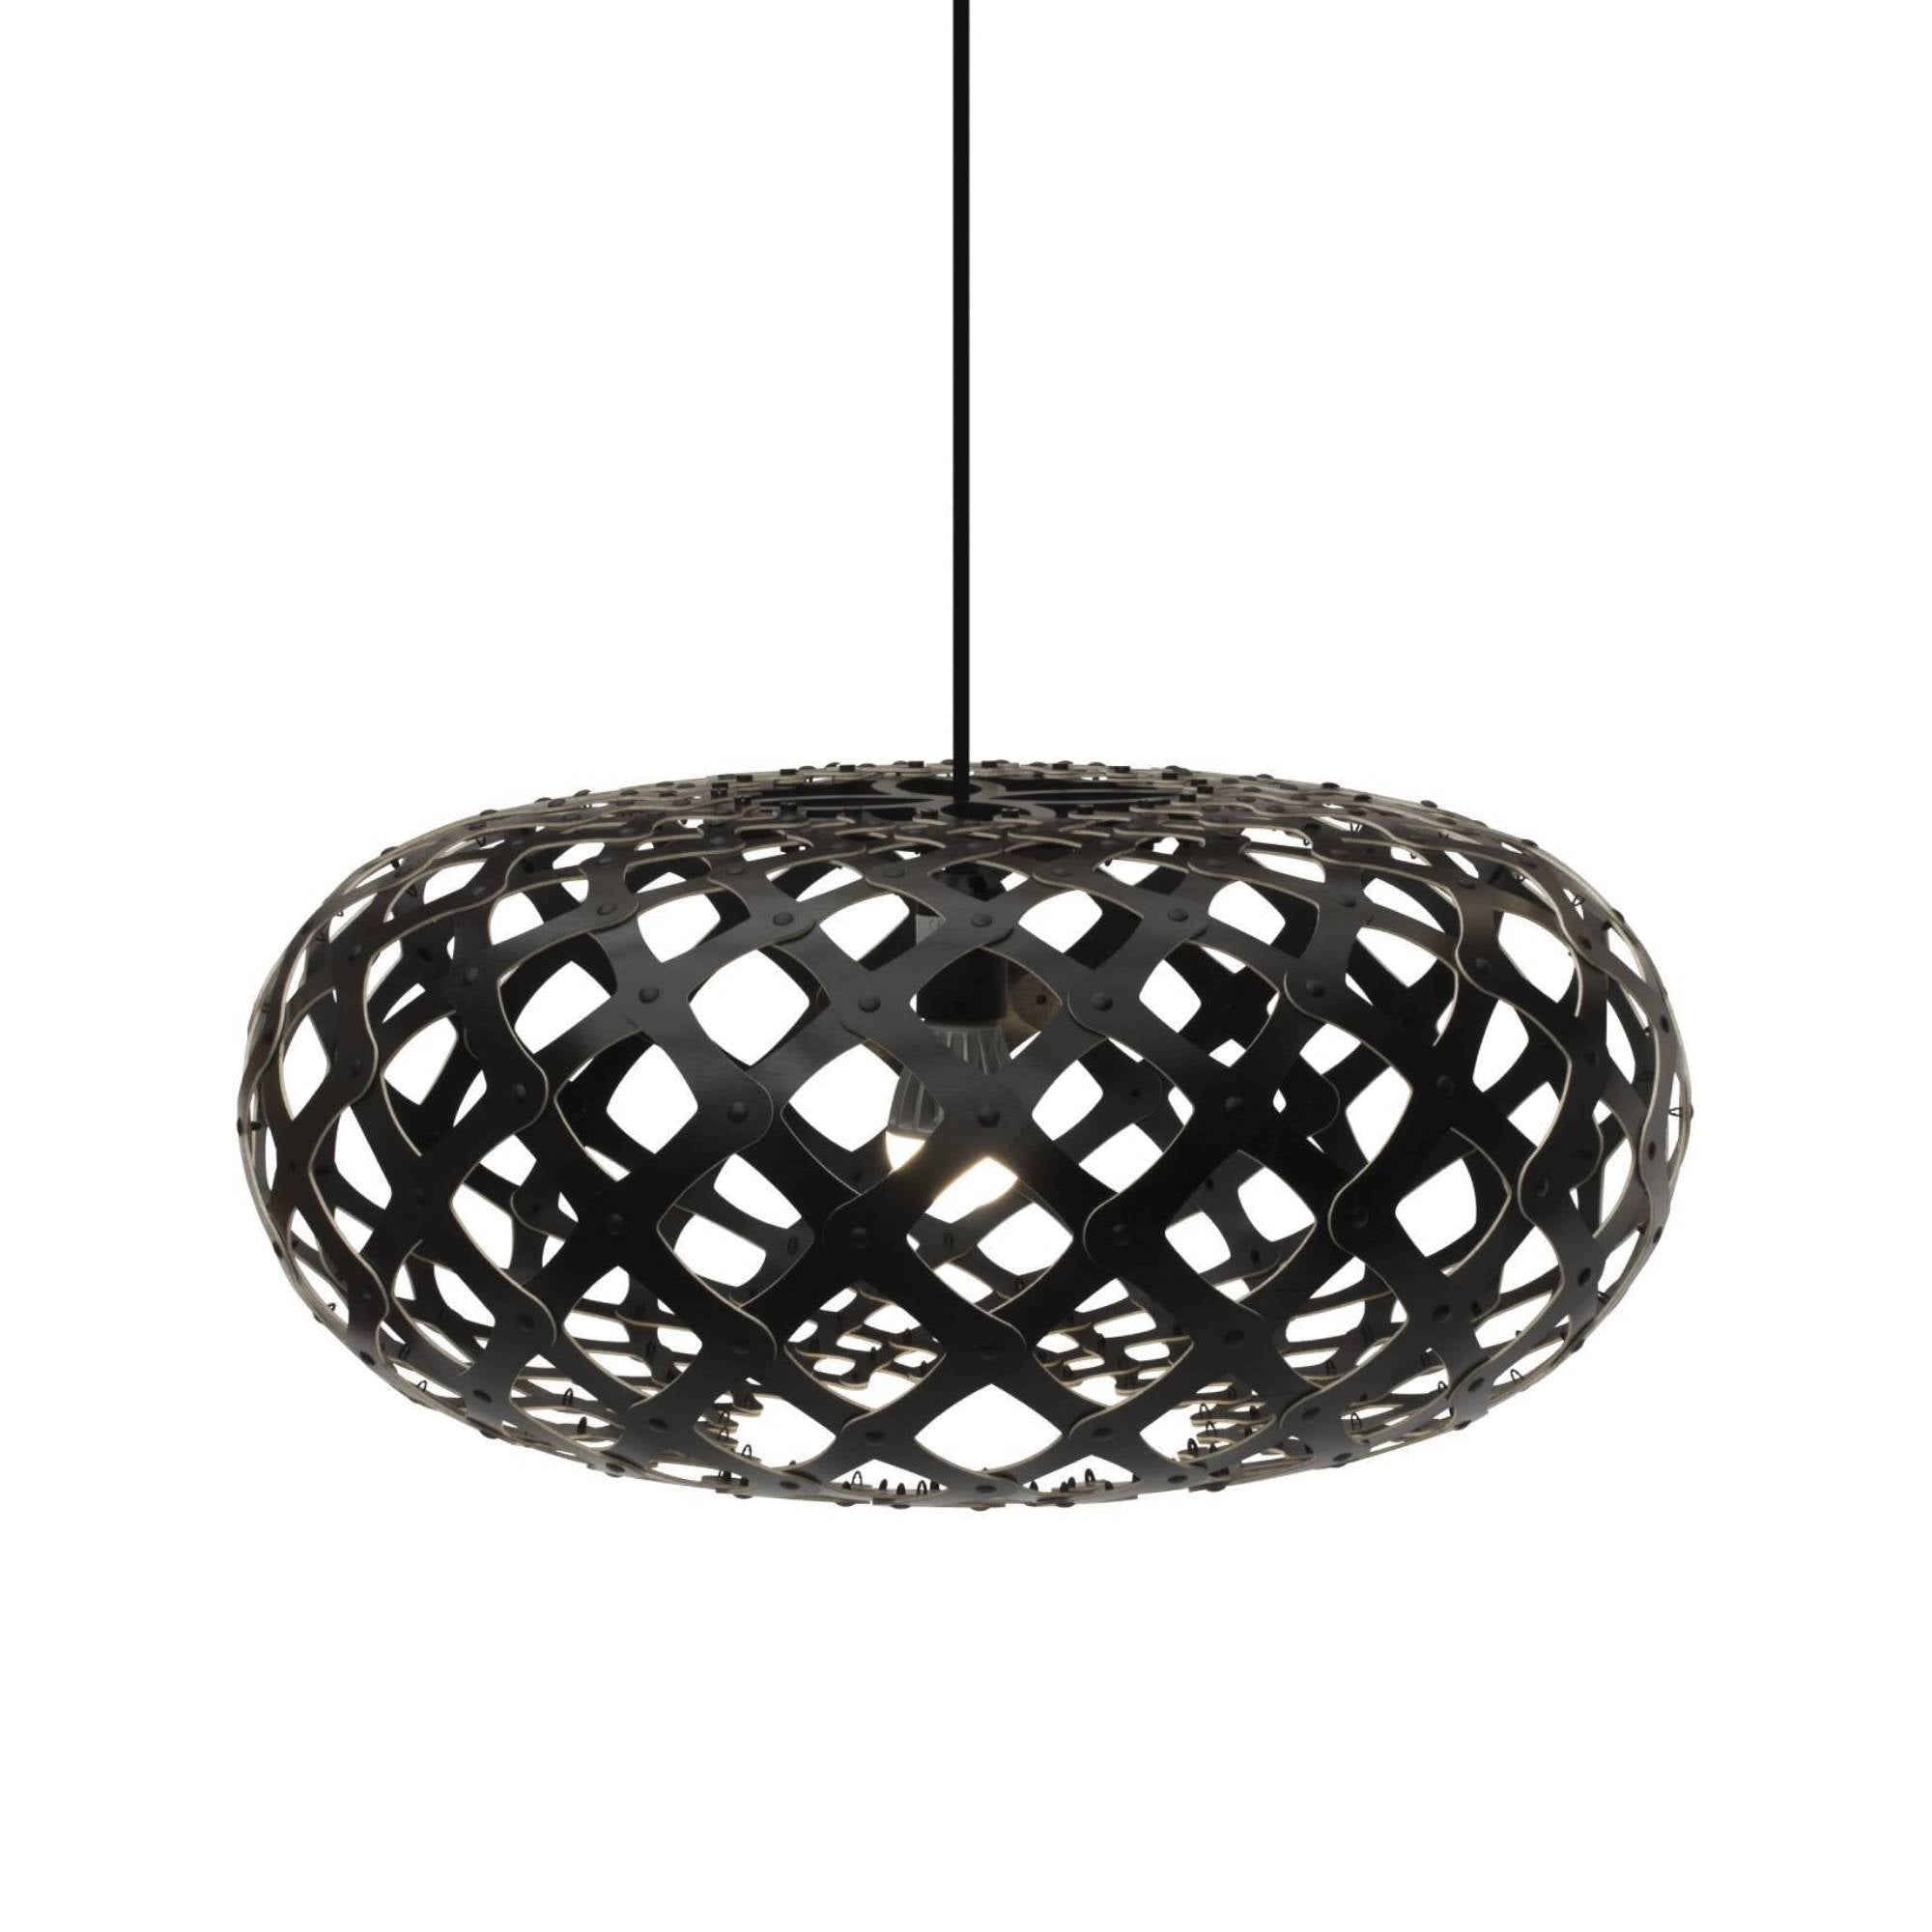 Kina Pendant Light: 600 + Black Two Sides